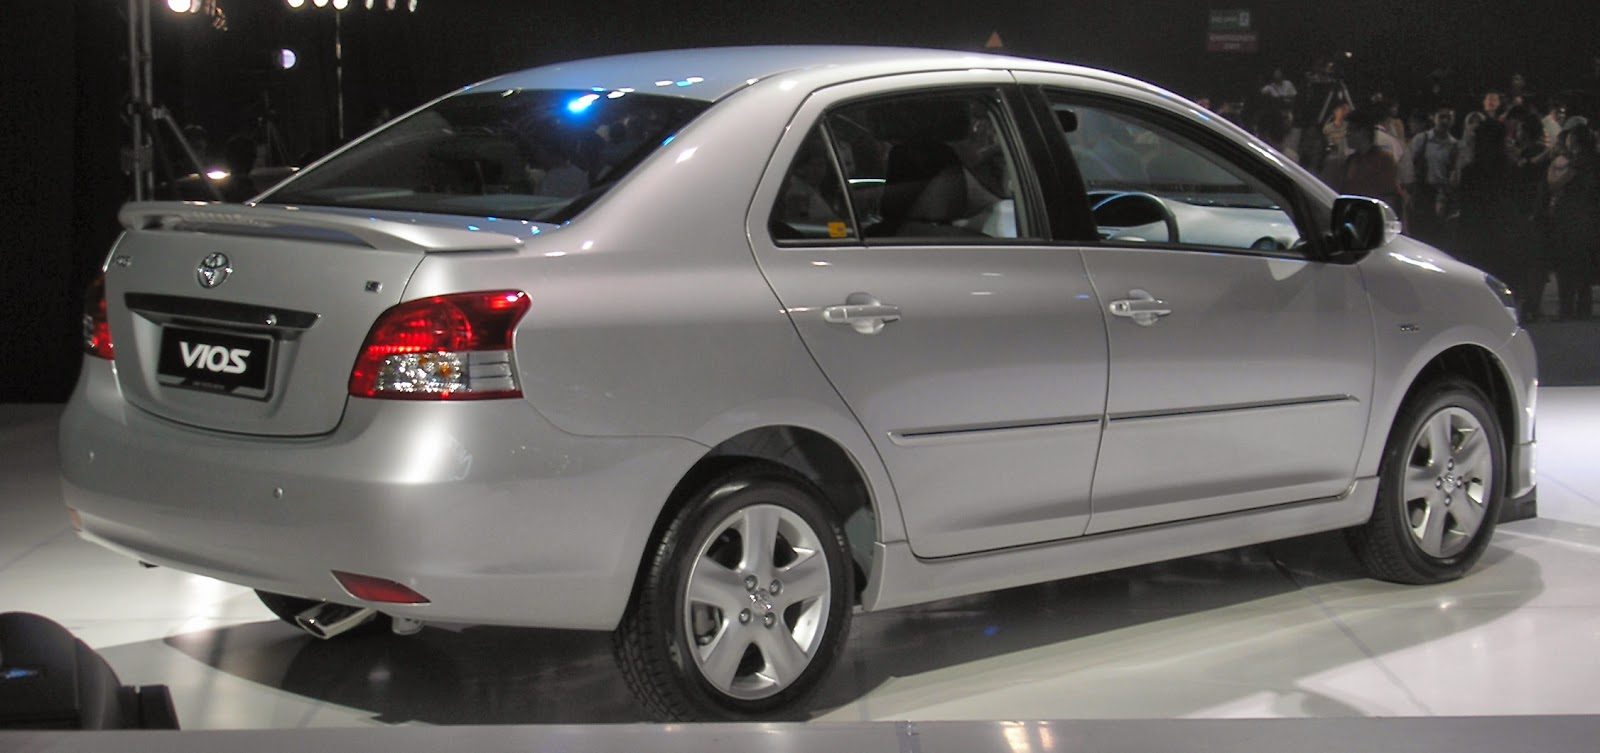 Toyota Belta / Vios / Yaris Rear View